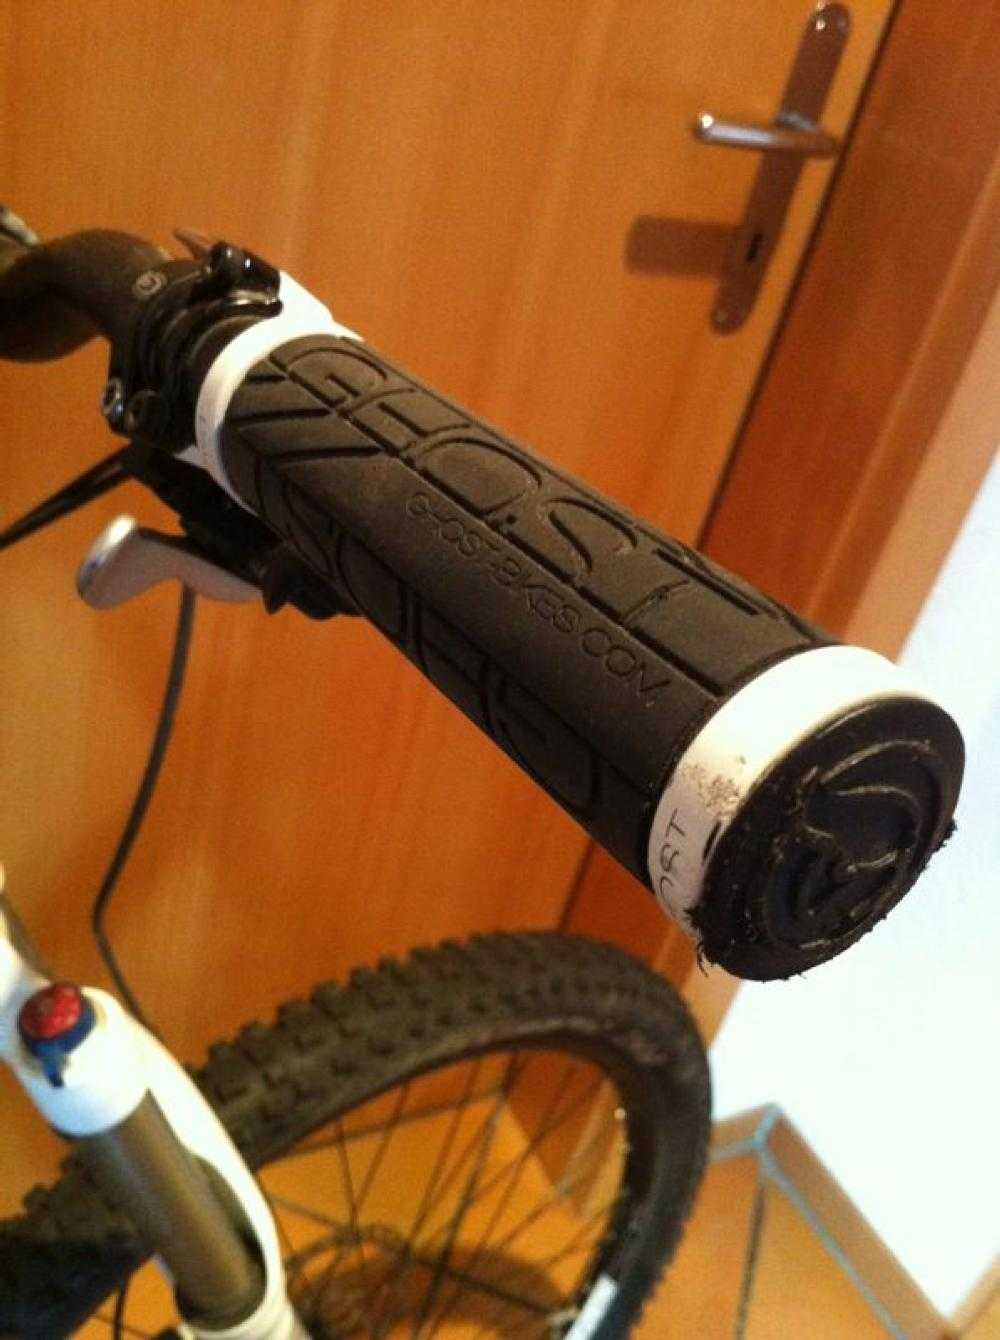 Mountainbike kaufen: GHOST AMR Plus 7200 Occasion